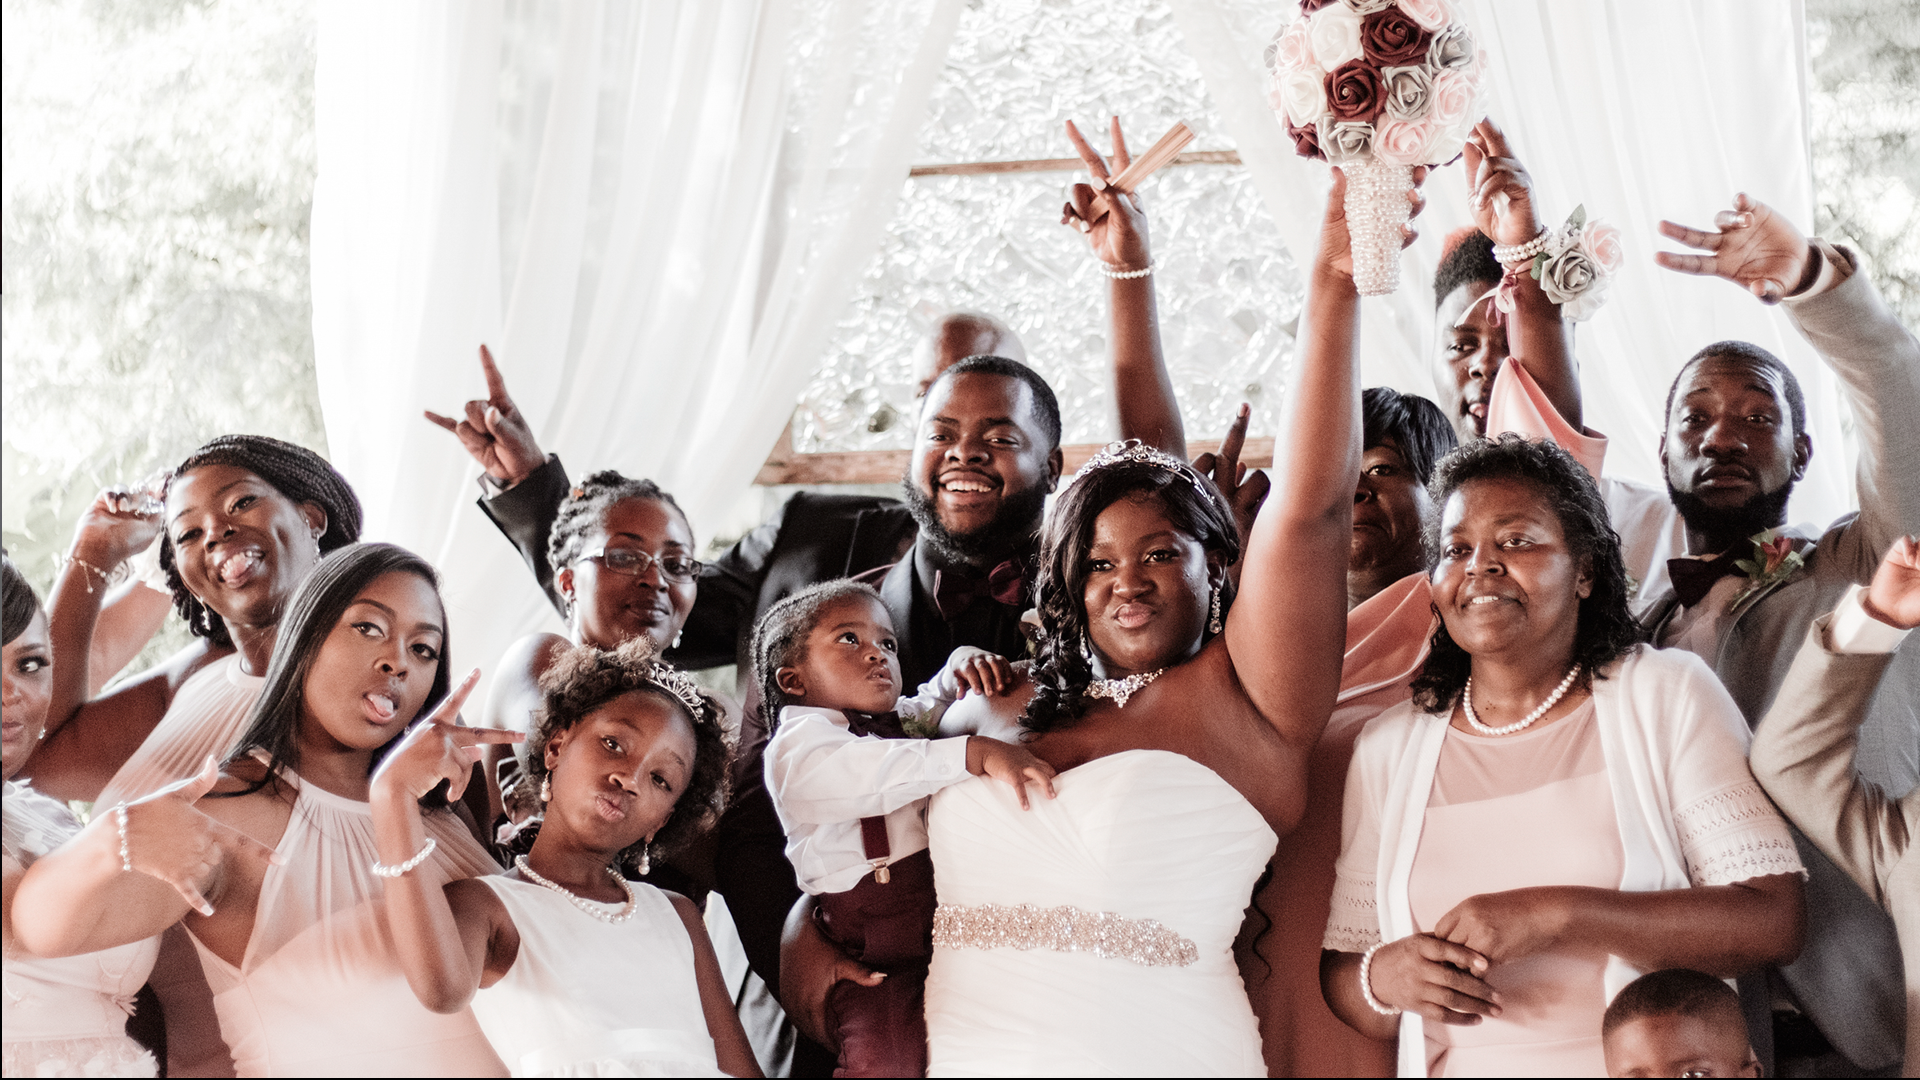 Jamal + Kendra | Shelby, North Carolina | Gingerbread House